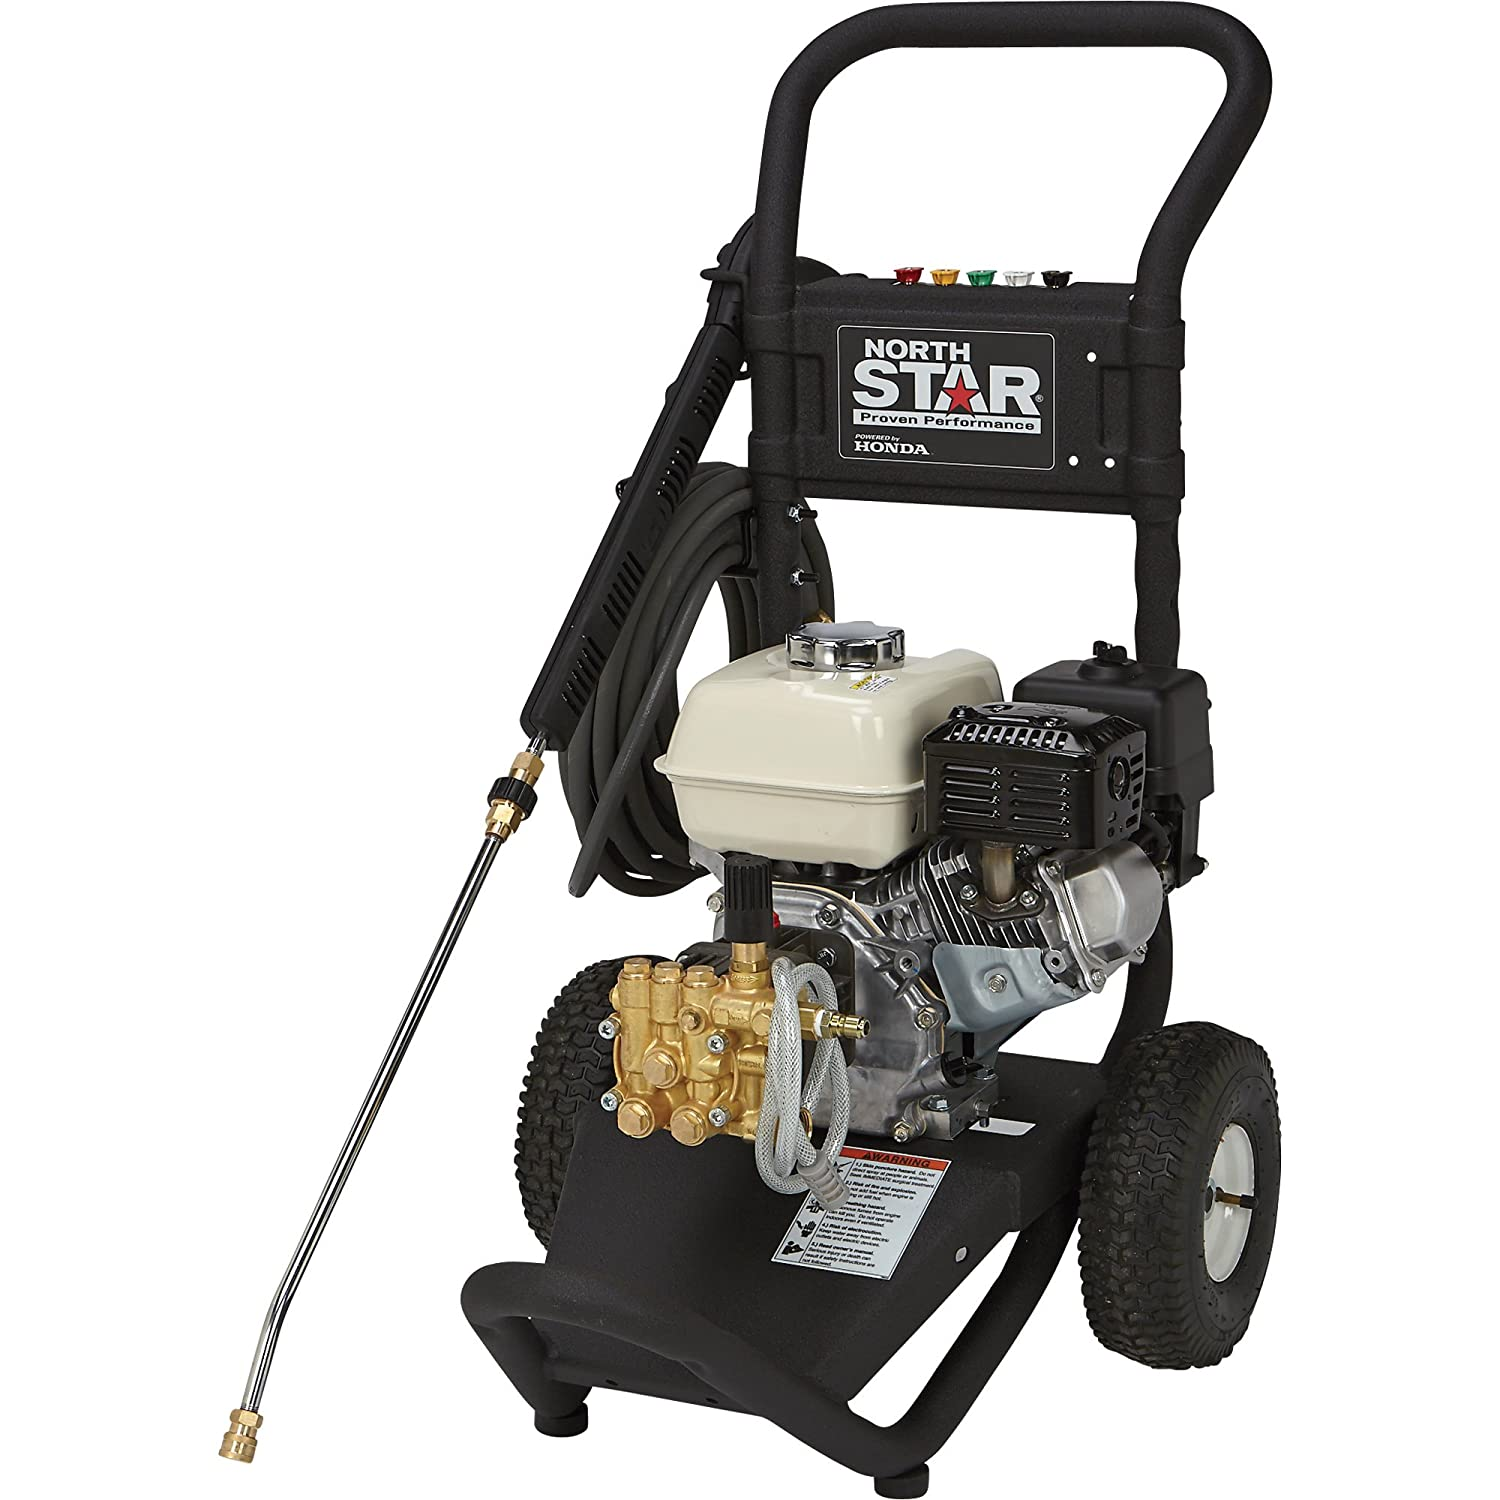 81UrVAPK3TL._SL1500_ amazon com northstar gas cold water pressure washer 3000 psi  at aneh.co